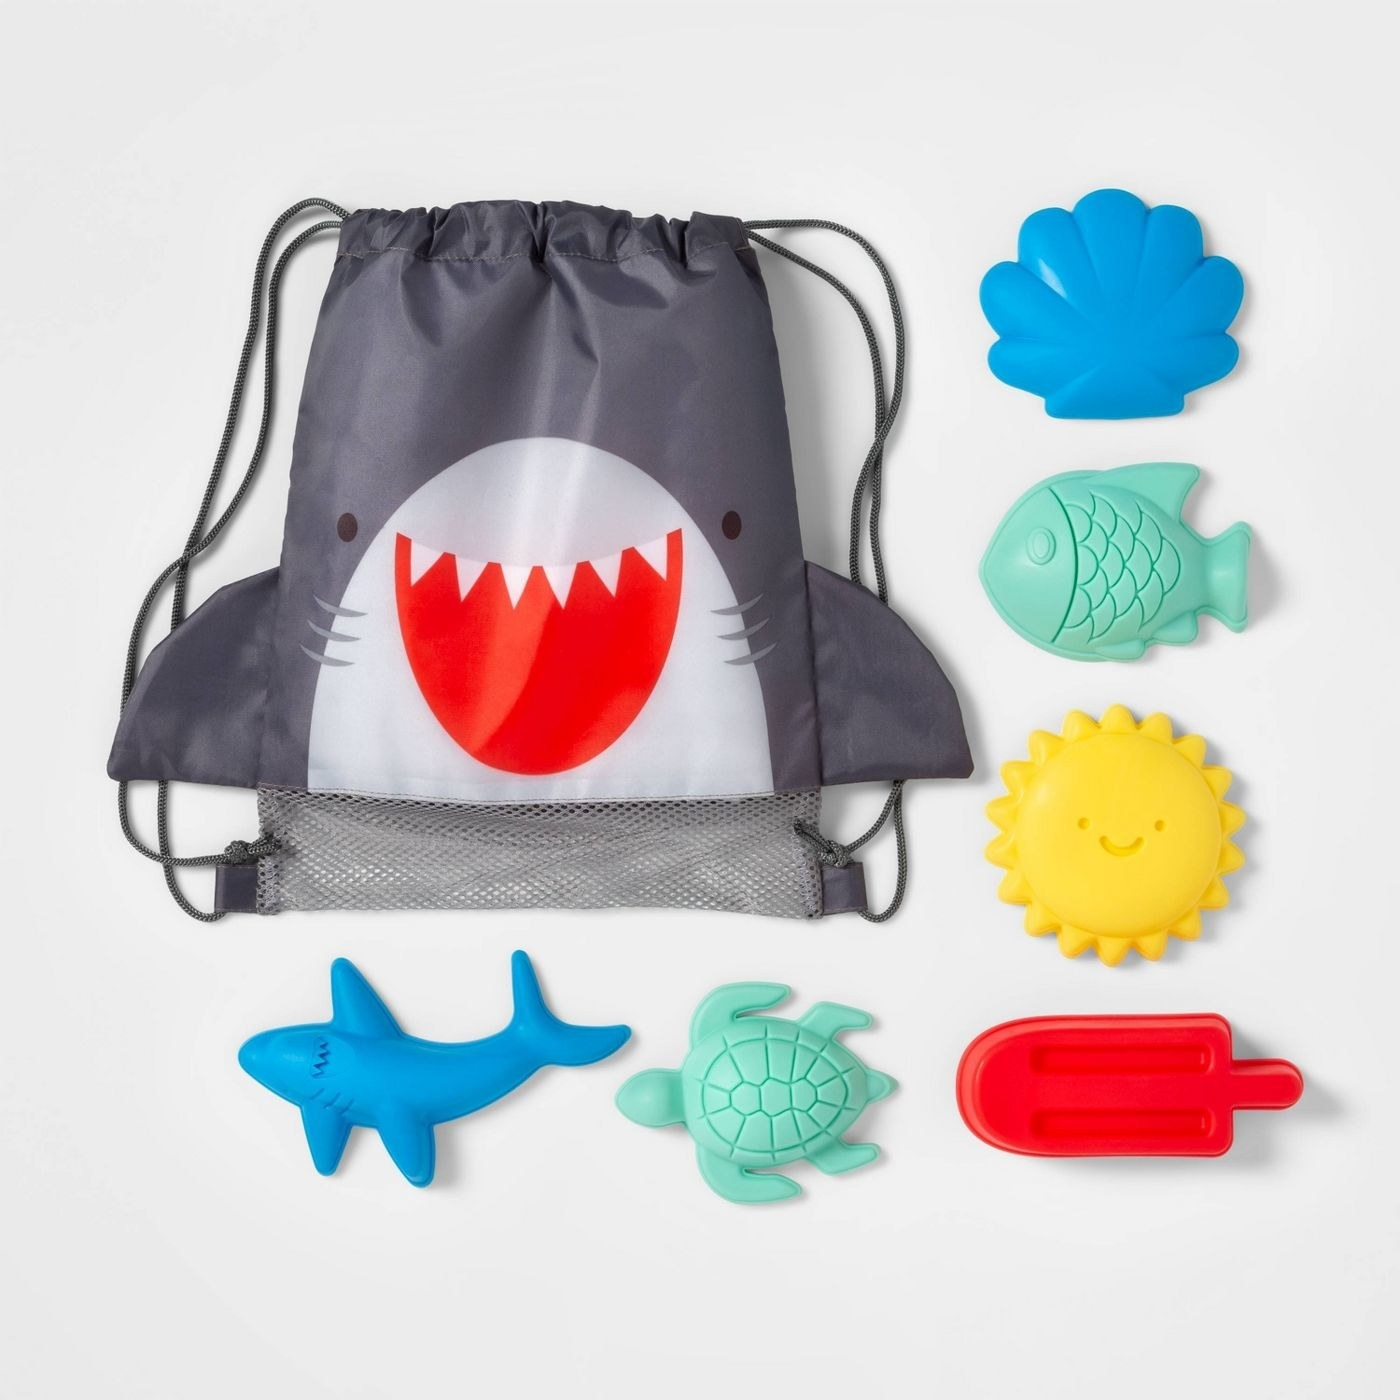 The mesh-bottomed shark face backpack complete with fins surrounded by six molds: a shark, turtle, popsicle, sun, fish, and shell